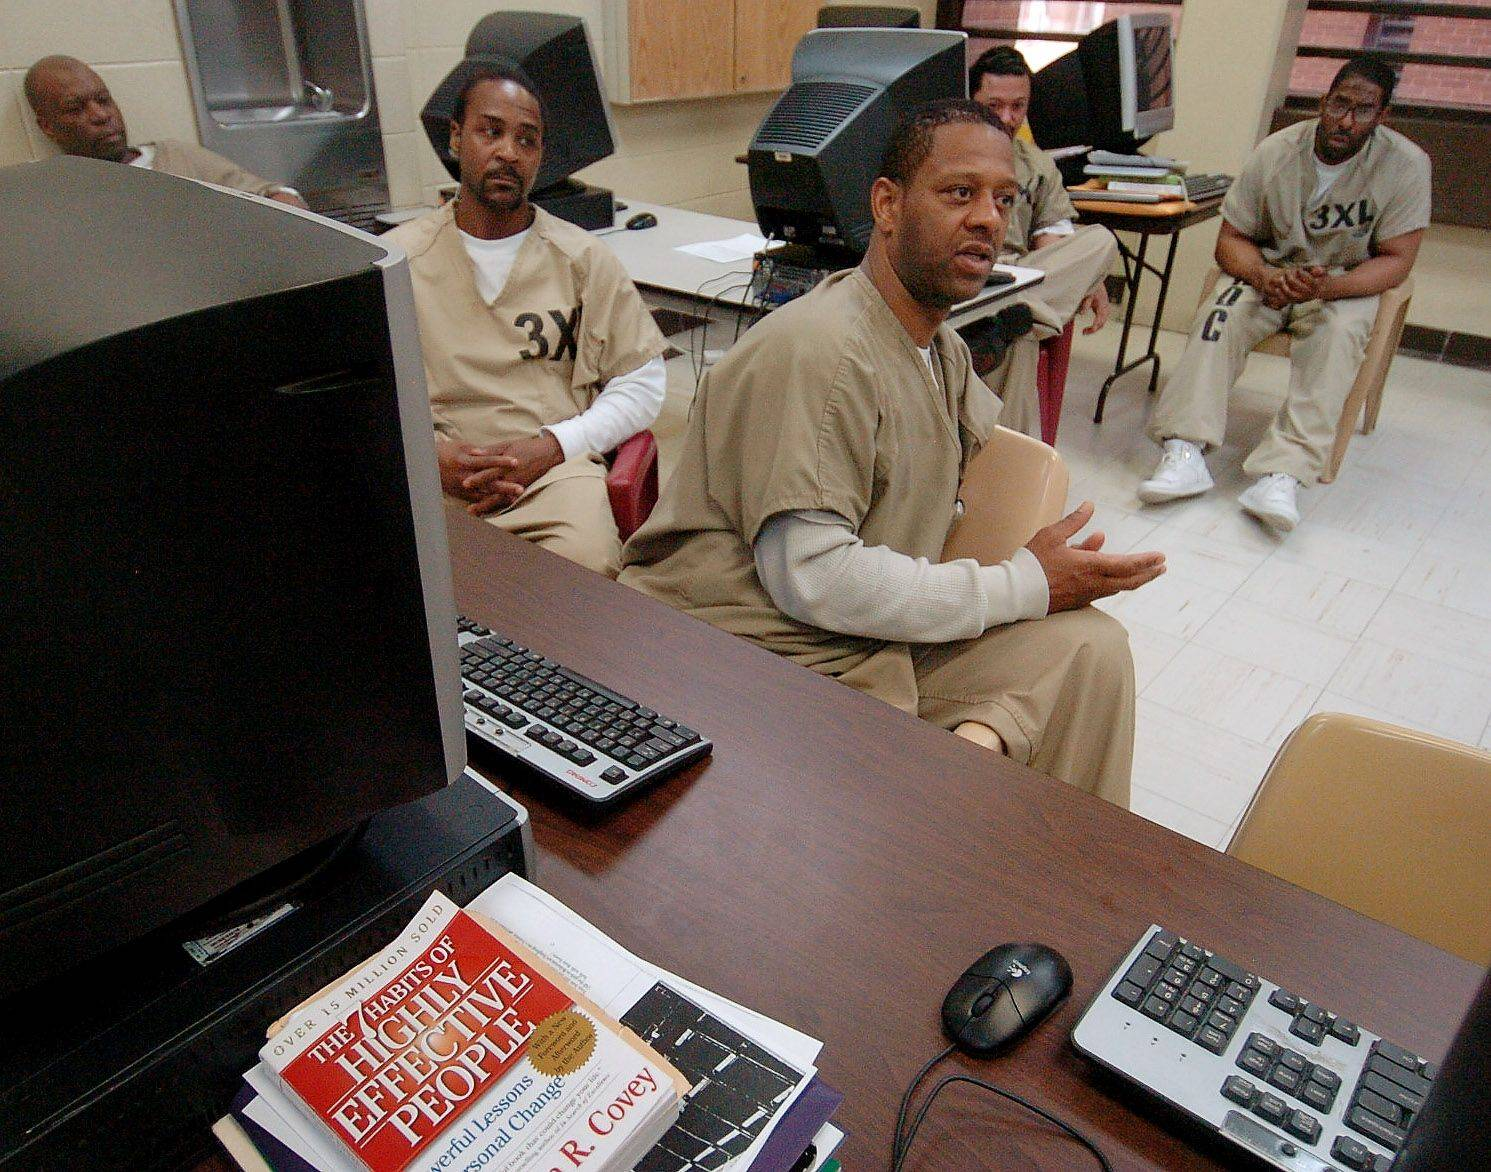 Omar Israel talks about his experience in the special unit at Cook County Jail to house veterans charged with felonies.